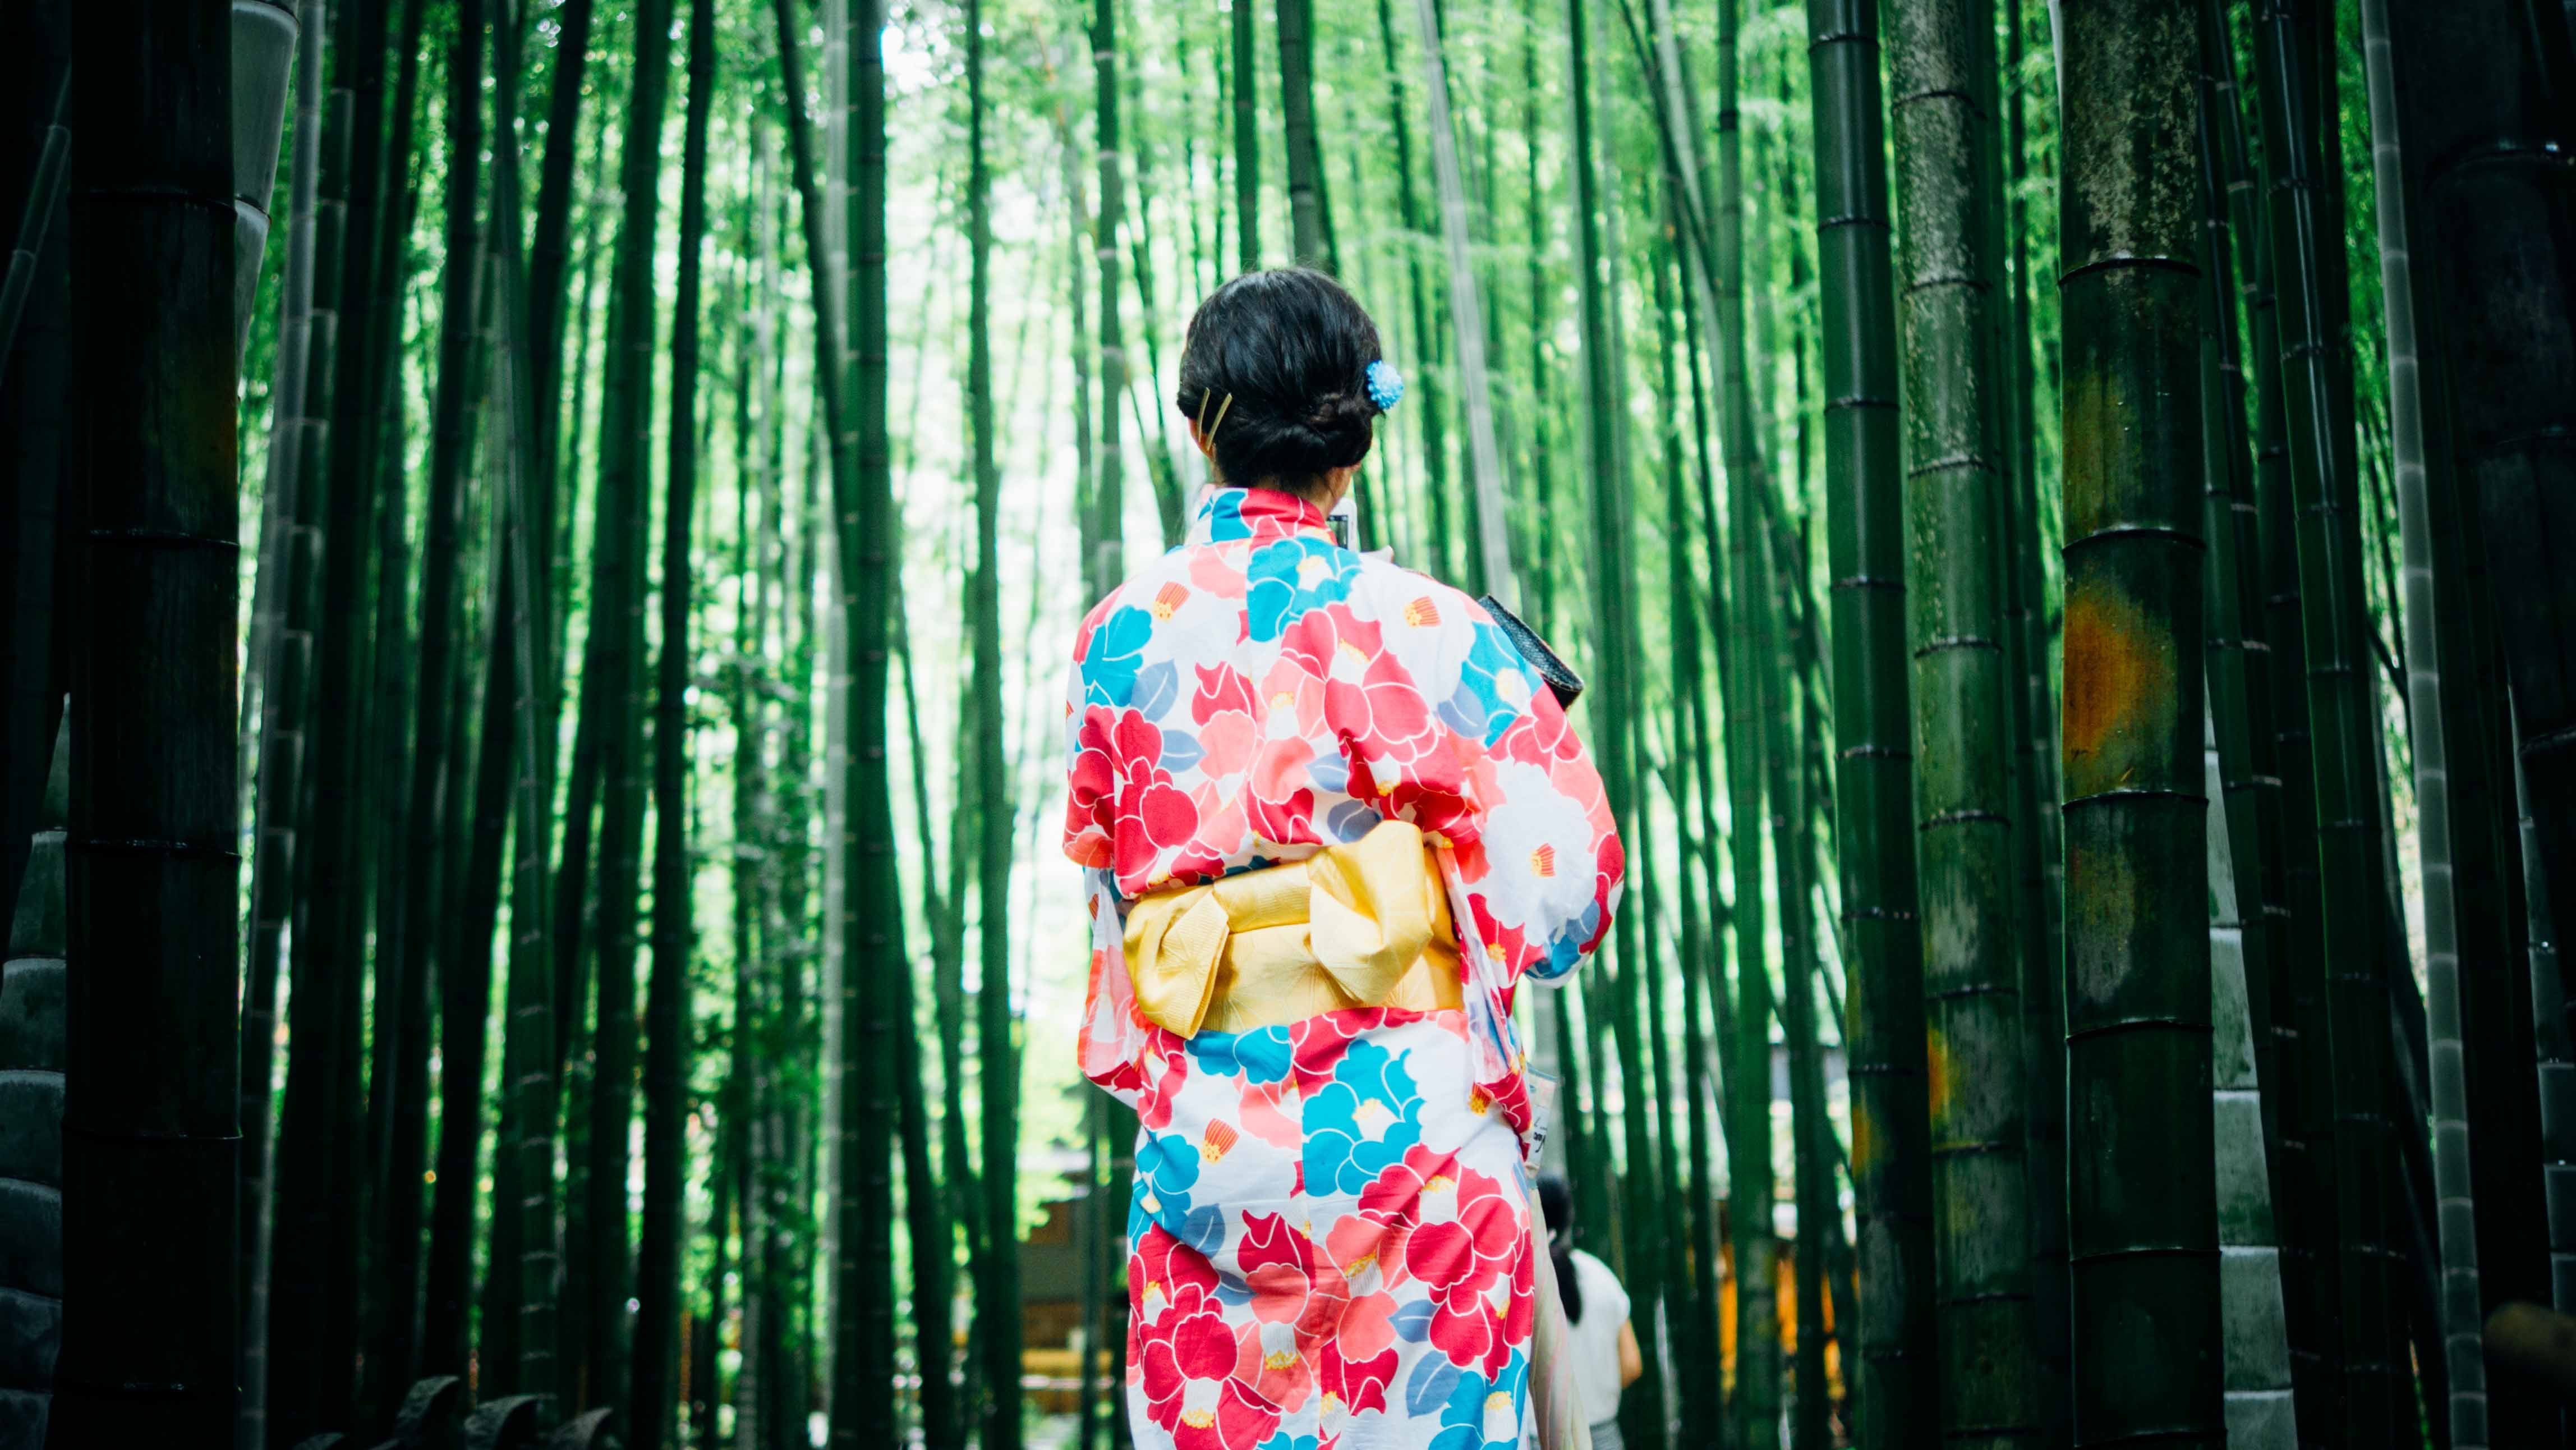 A woman in a colorful floral kimono walking between tall bamboo plants